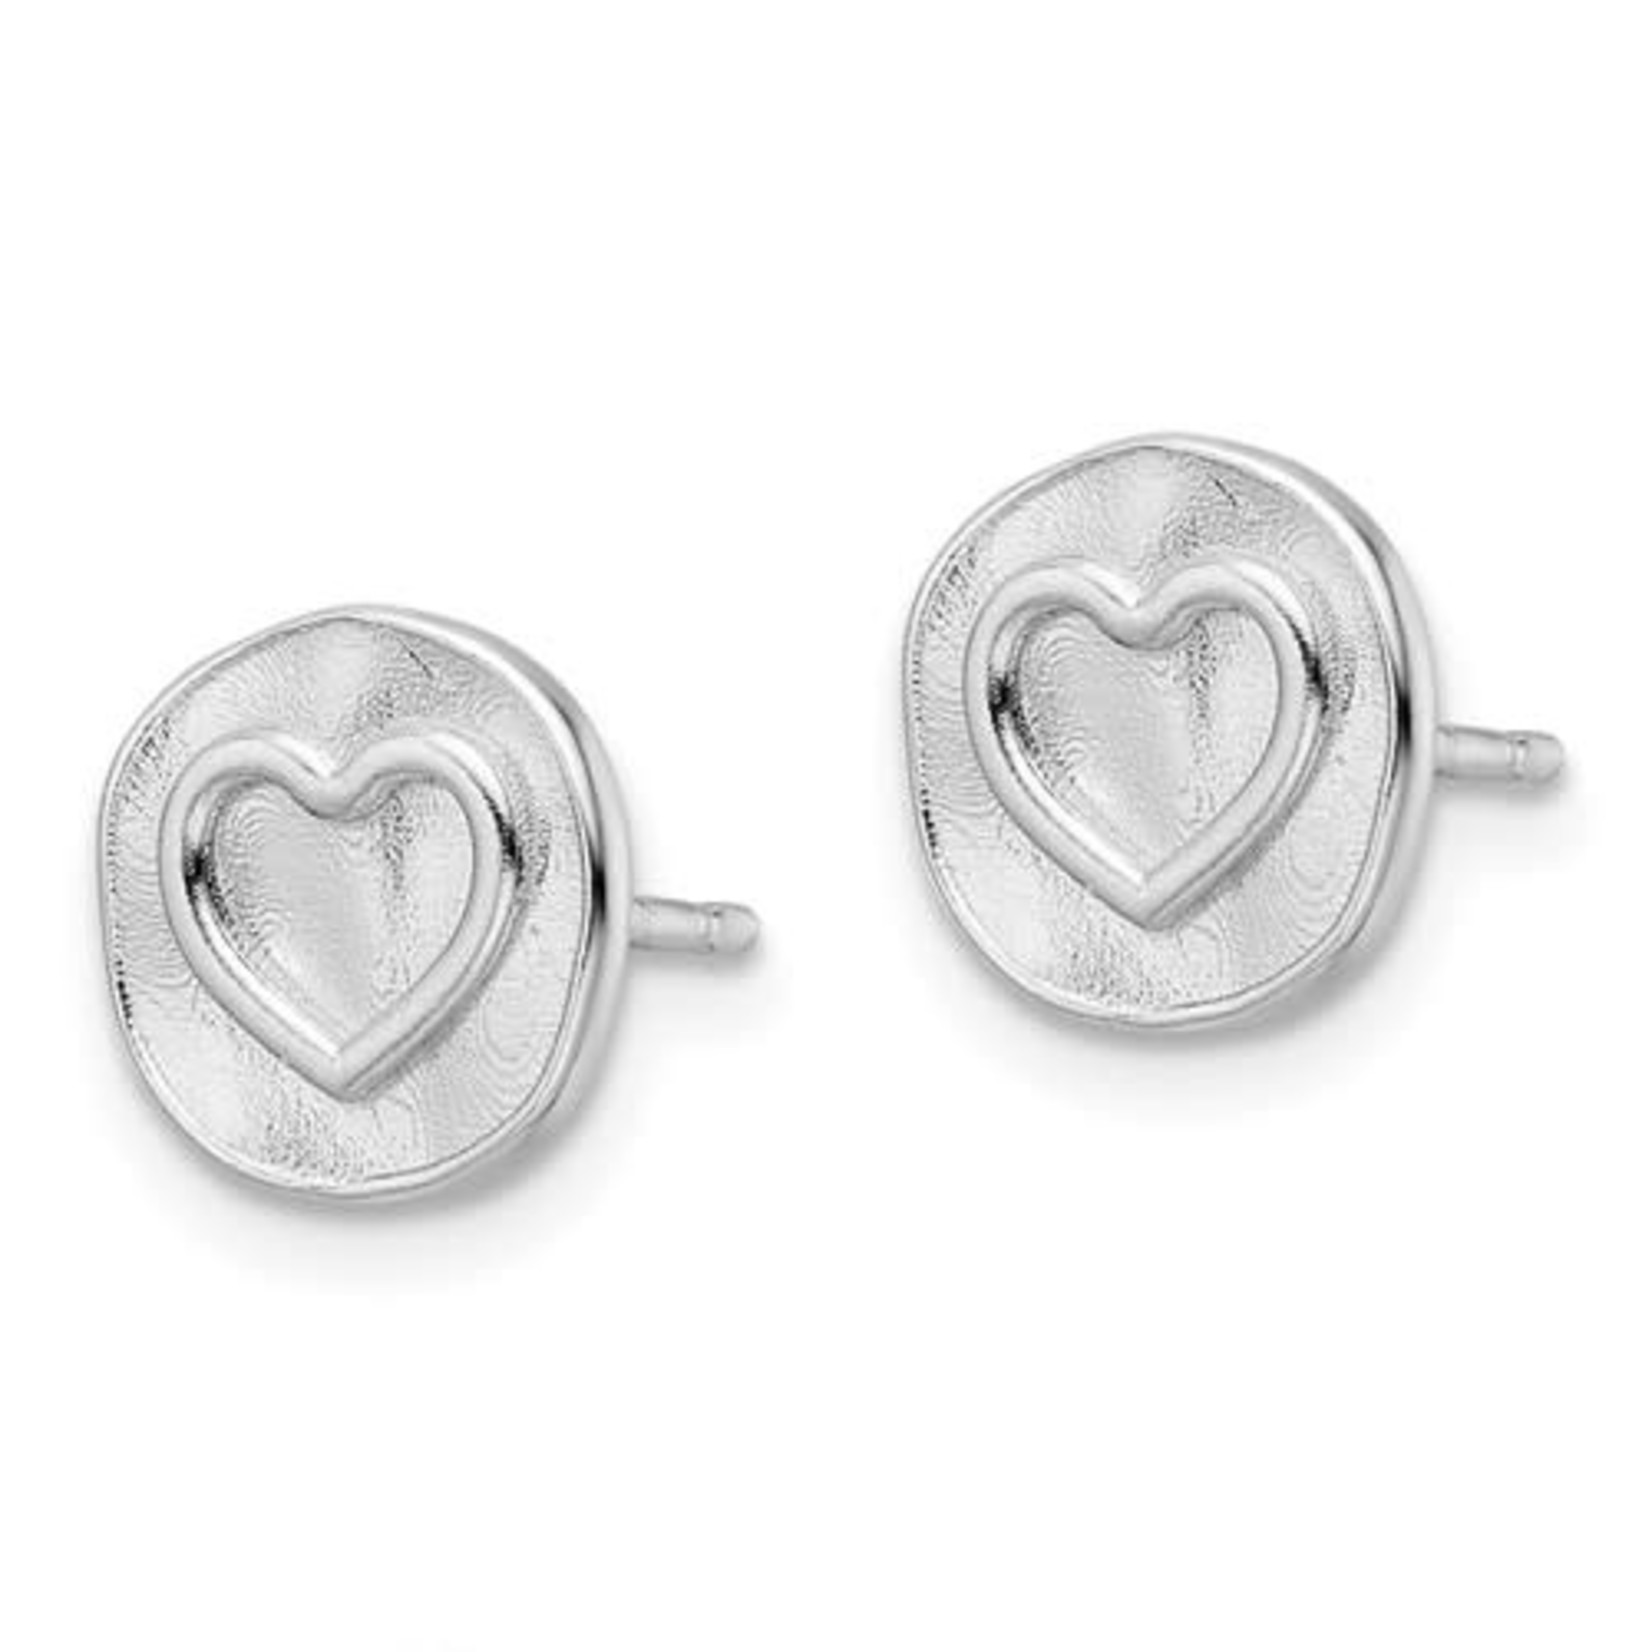 This Is Life Heart Stamp Sterling Silver Earrings